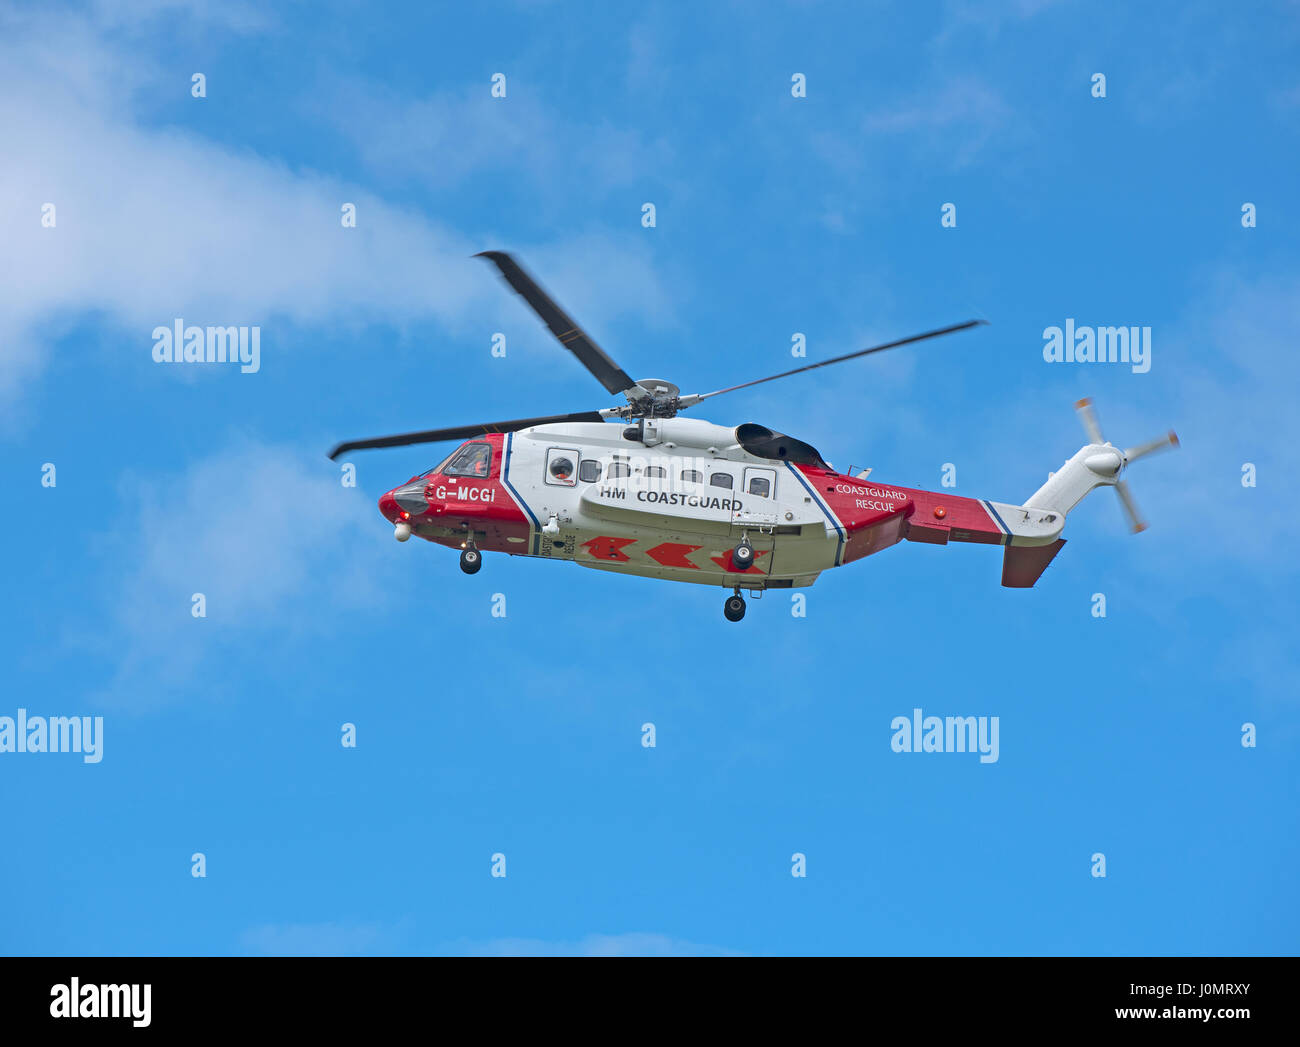 UK Coastguard Sikorsky S-92a Helicopter G-MCGI departing its Inverness Dalcross Airport base on an emergency callout. Stock Photo